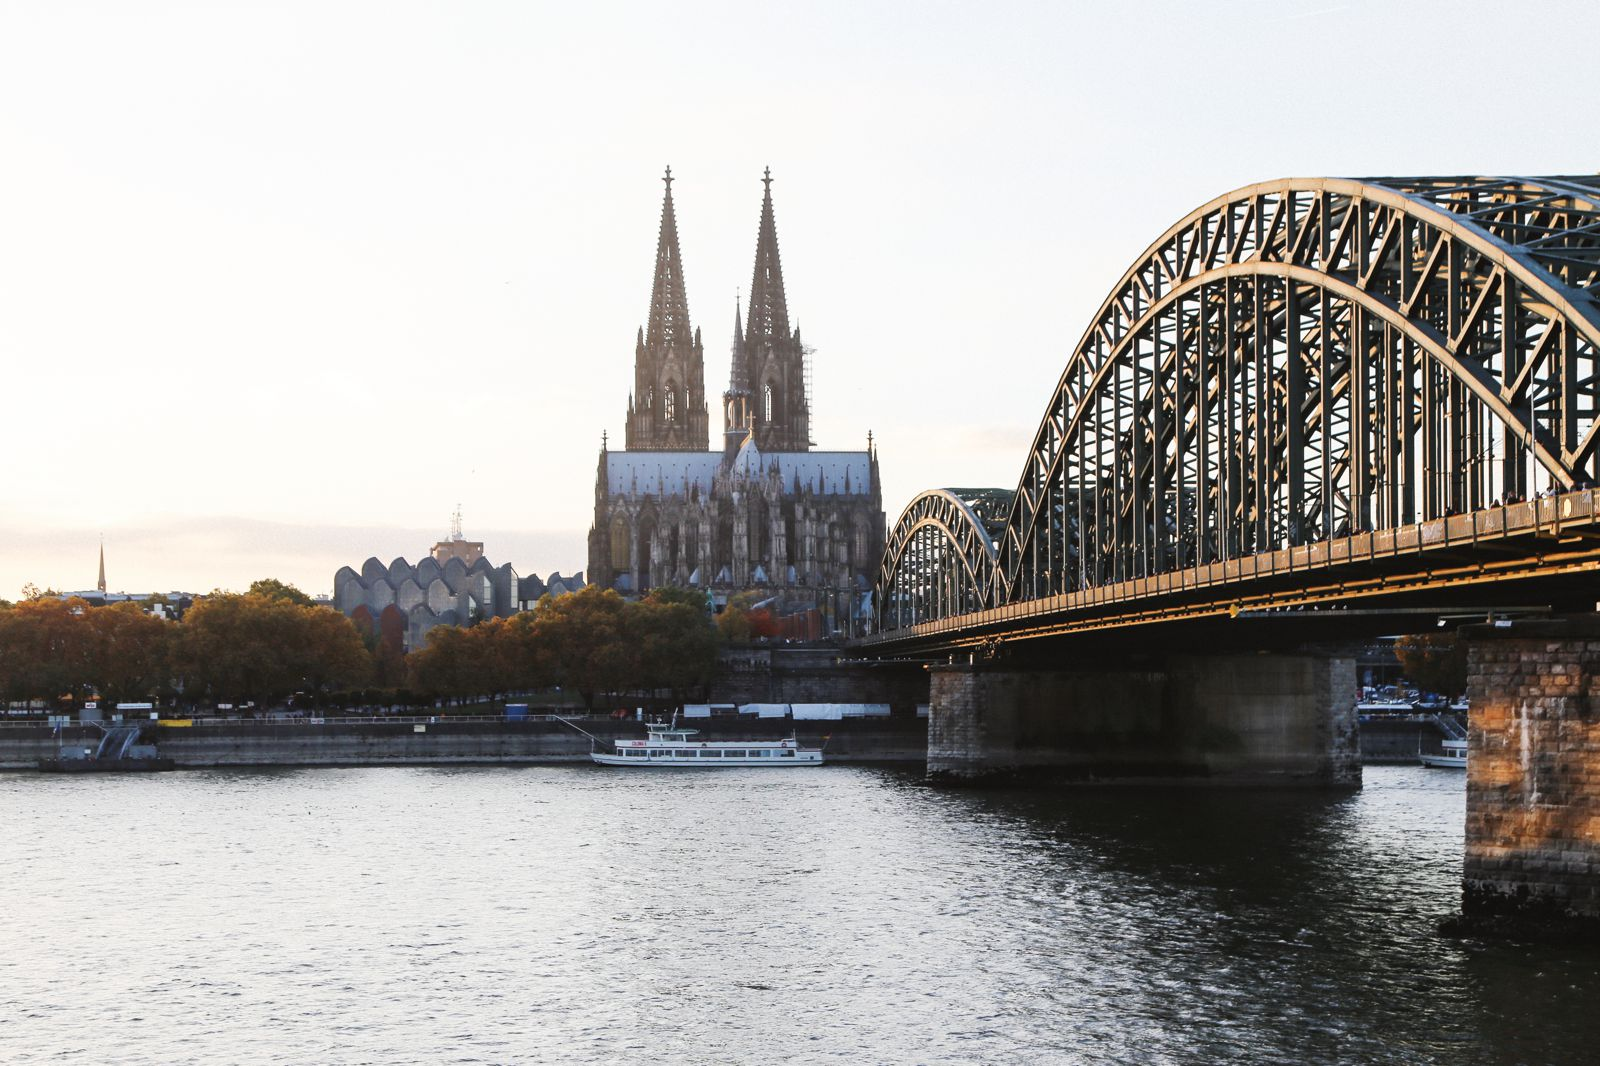 Cologne City Guide What To Visit While You're In Town For IMM 2019 imm 2019 Cologne City Guide: What To Visit While You're In Town For IMM 2019 Cologne City Guide What To Visit While Youre In Town For IMM 2019